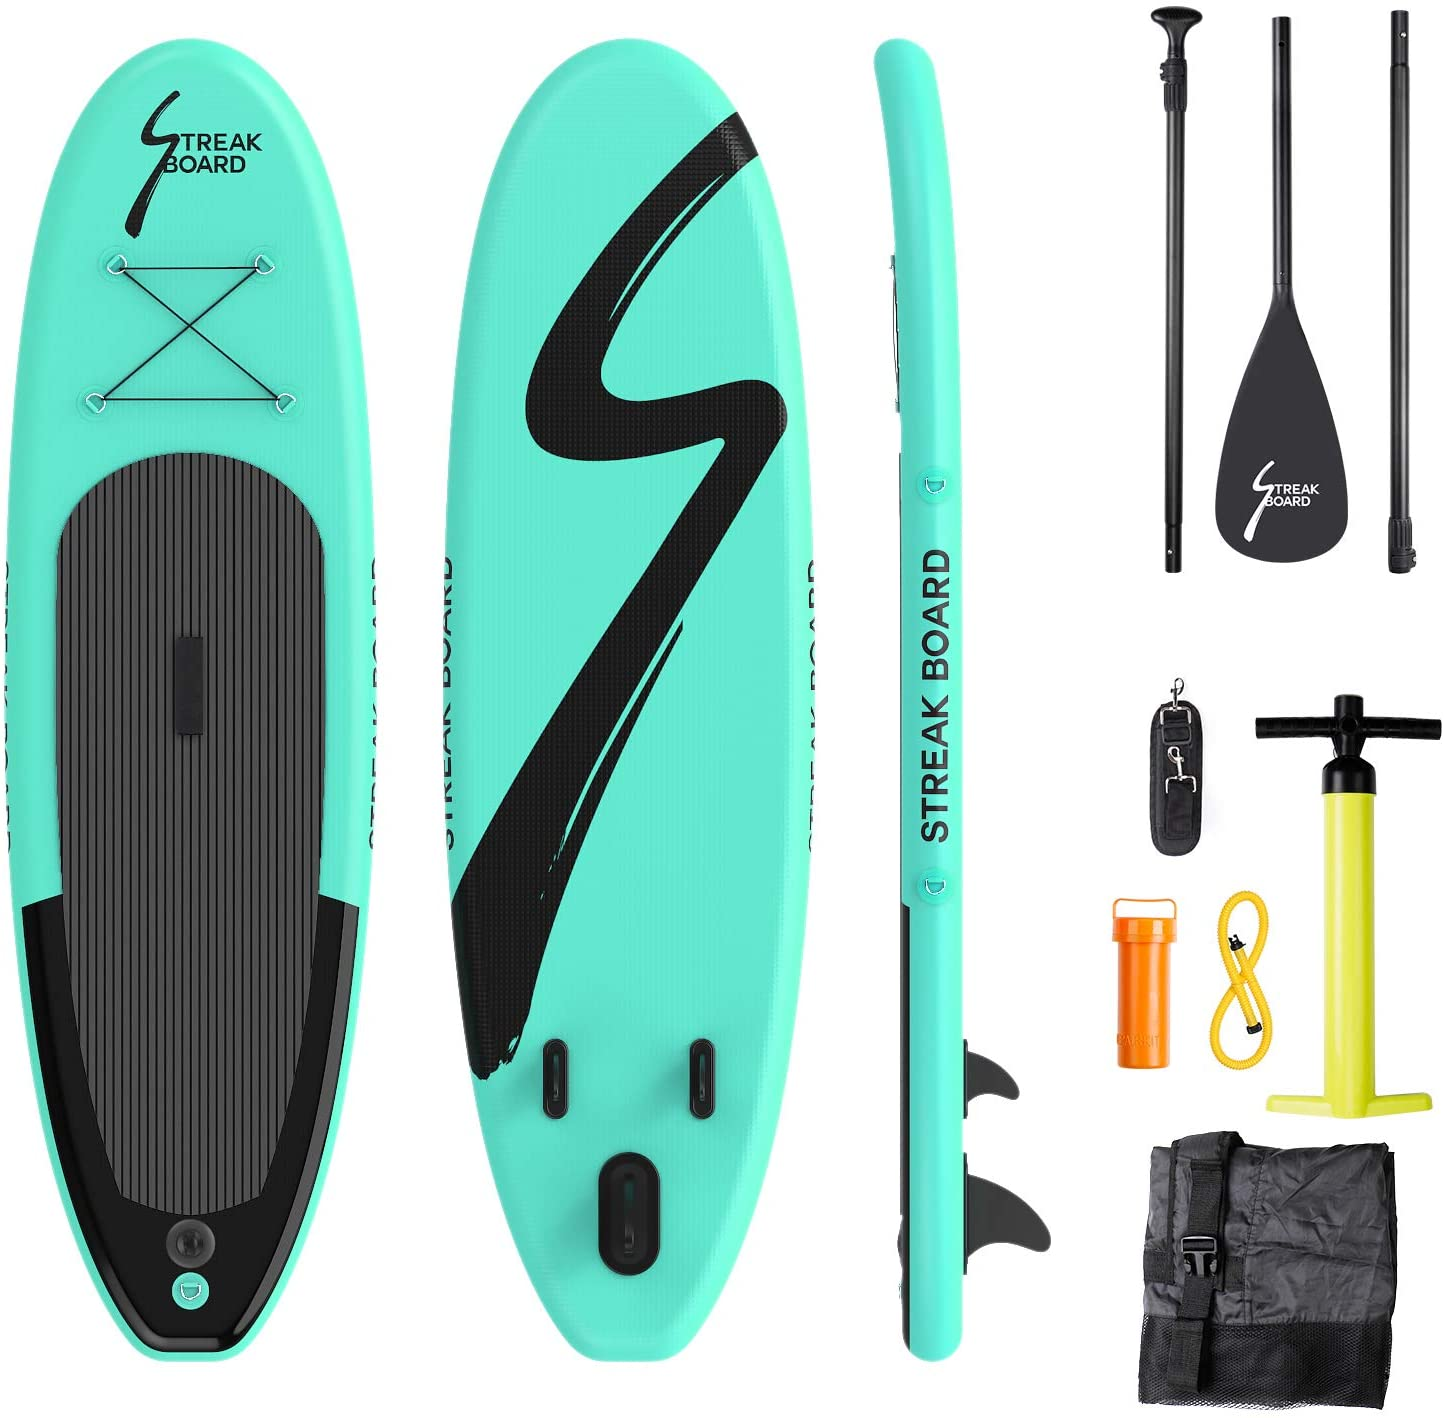 Inflatable Paddle Boards – Key Features and Advantages